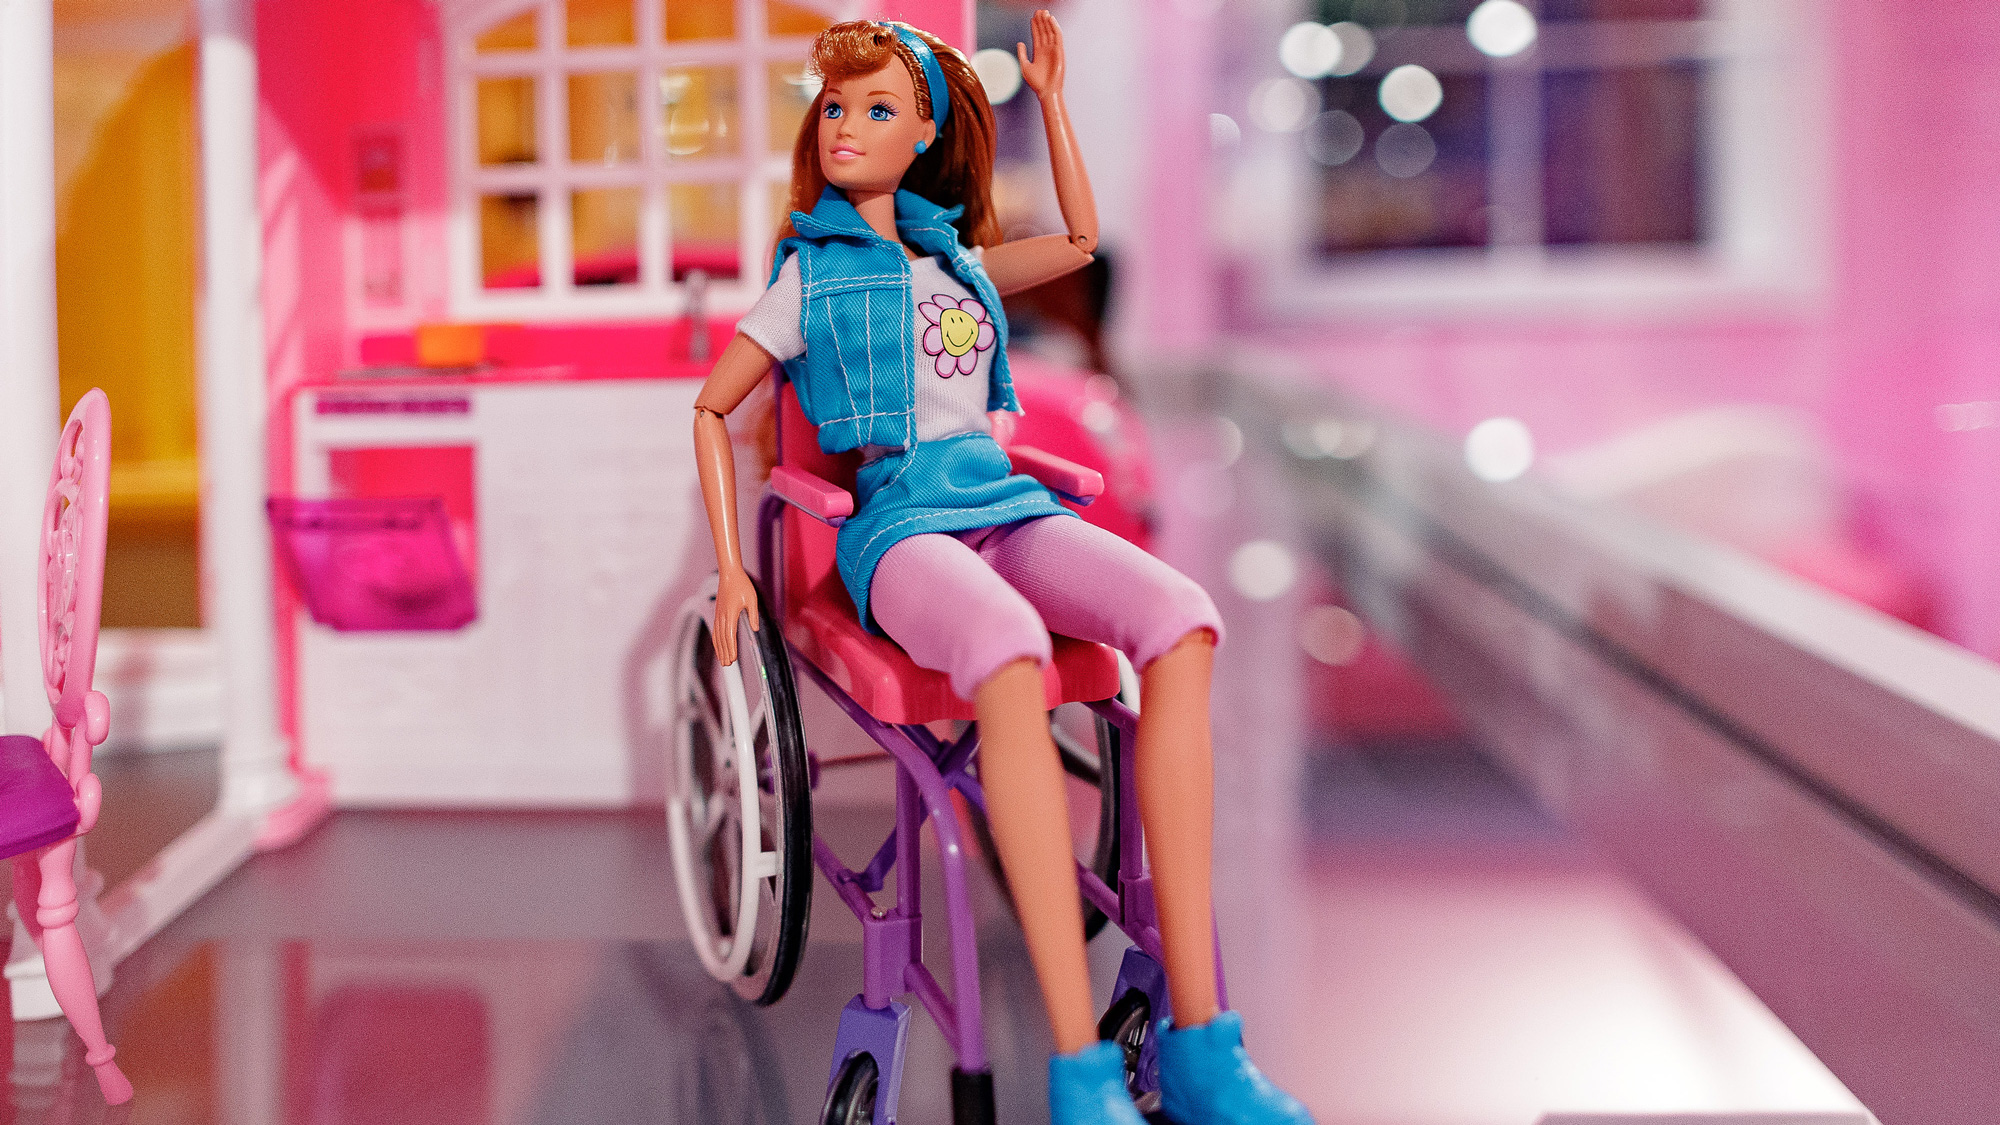 becky barbie u0027s friend who uses a wheelchair was discontinued